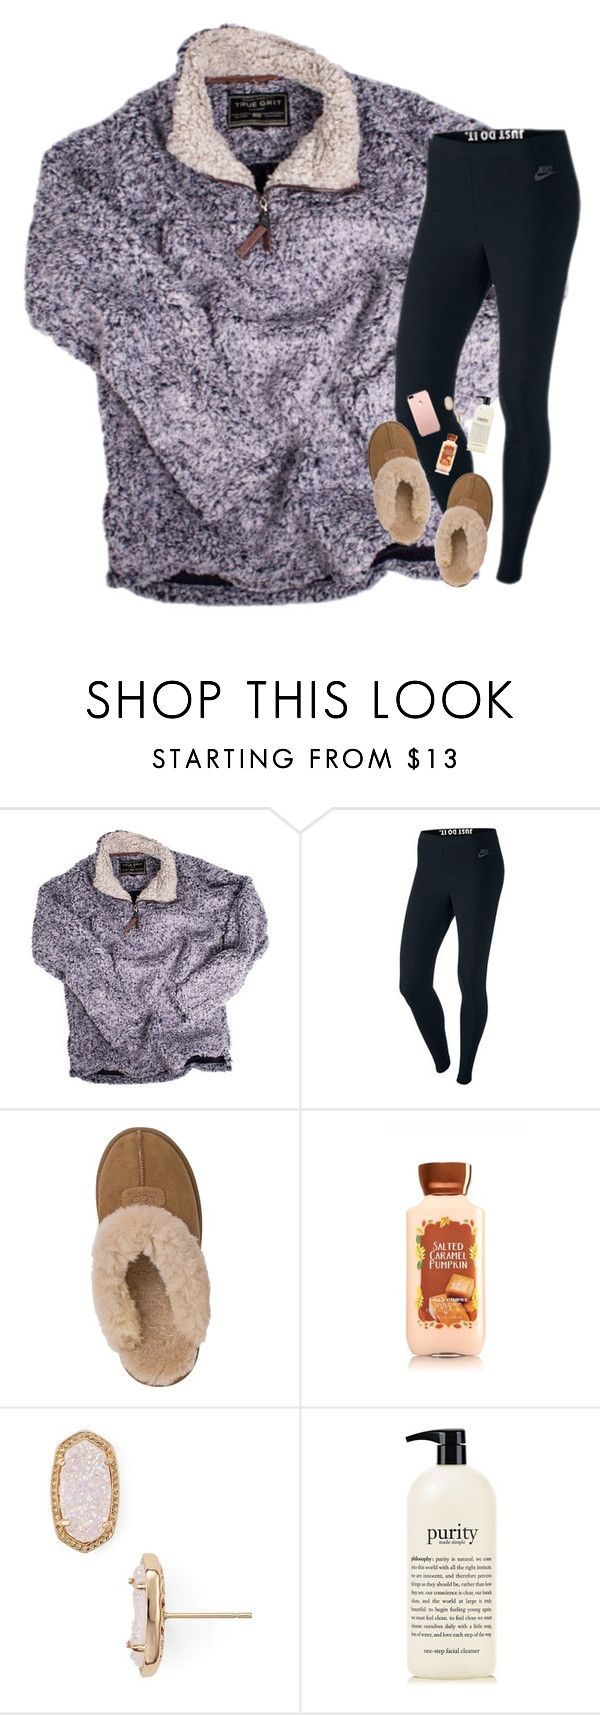 """""""mild concussion currently"""" by mehanahan ❤ liked on Polyvore featuring True Grit, NIKE, UGG Australia, Kendra Scott and philosophy"""